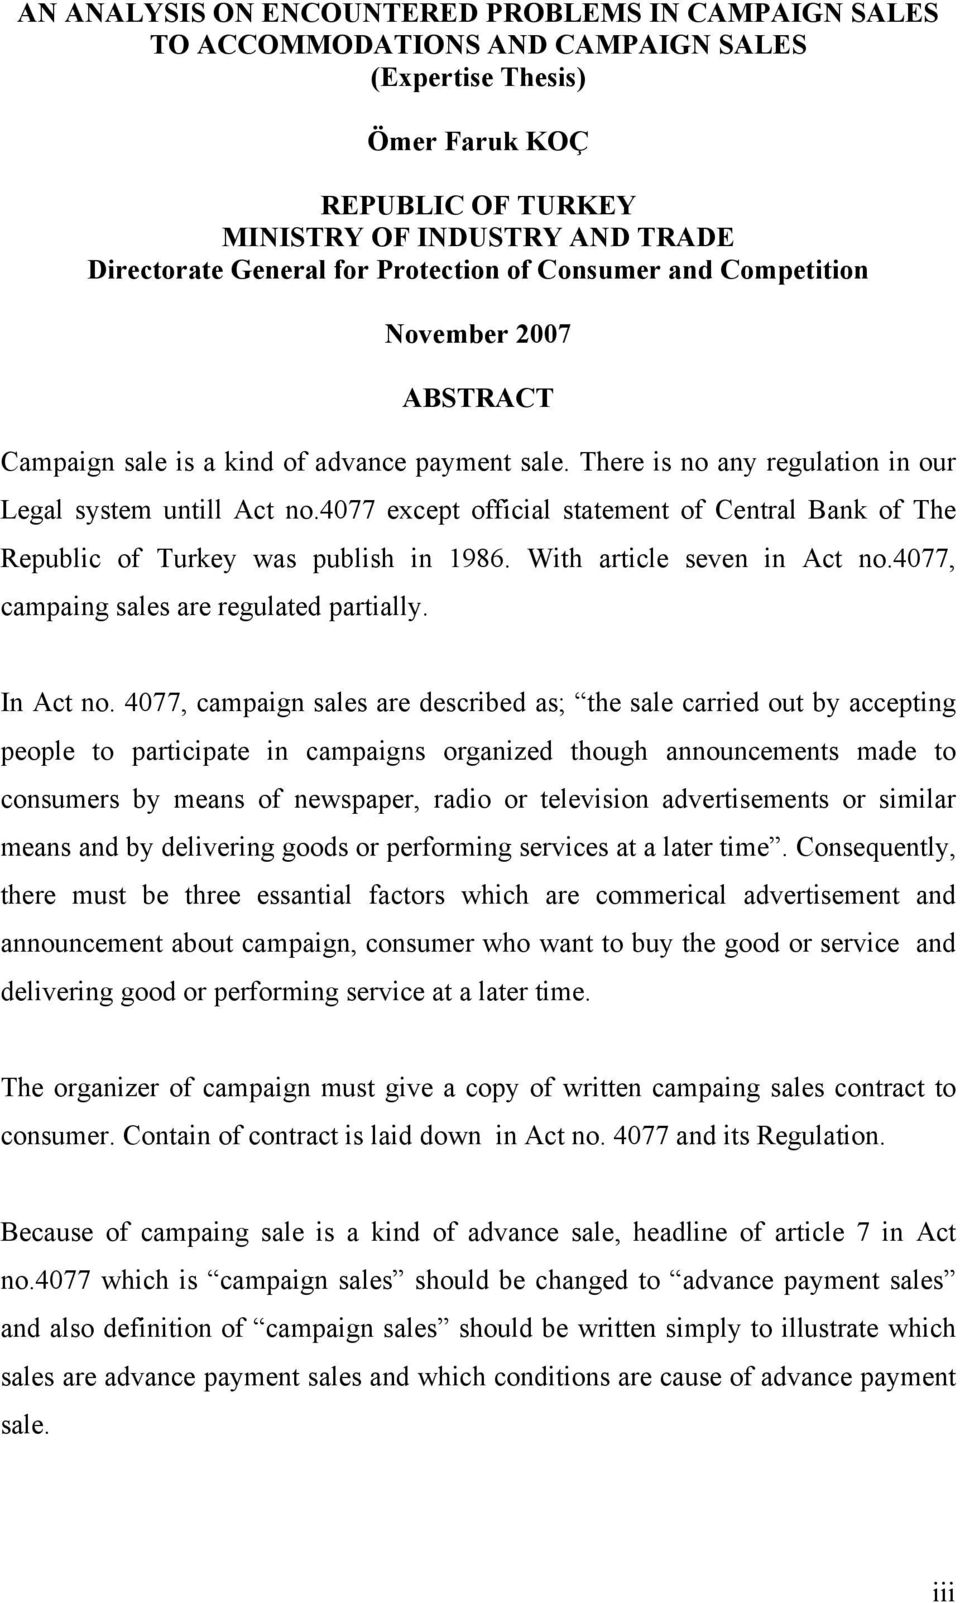 4077 except official statement of Central Bank of The Republic of Turkey was publish in 1986. With article seven in Act no.4077, campaing sales are regulated partially. In Act no.